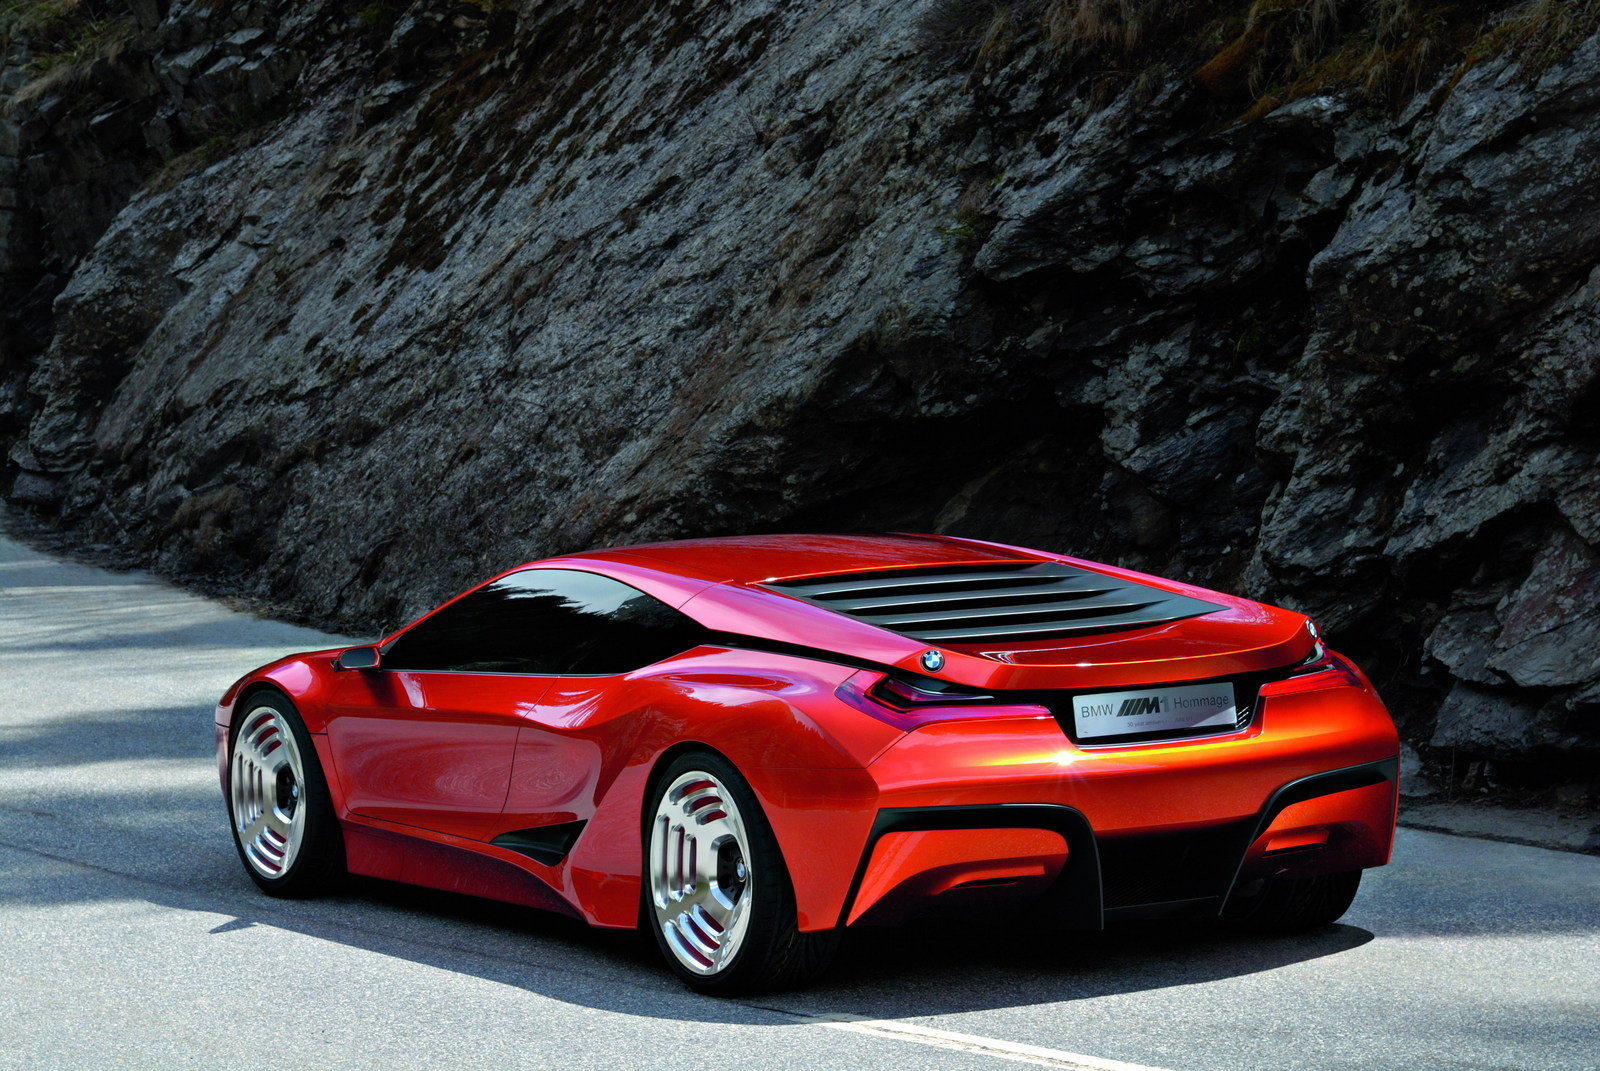 2008 bmw m1 hommage picture 631896 car review top speed. Black Bedroom Furniture Sets. Home Design Ideas